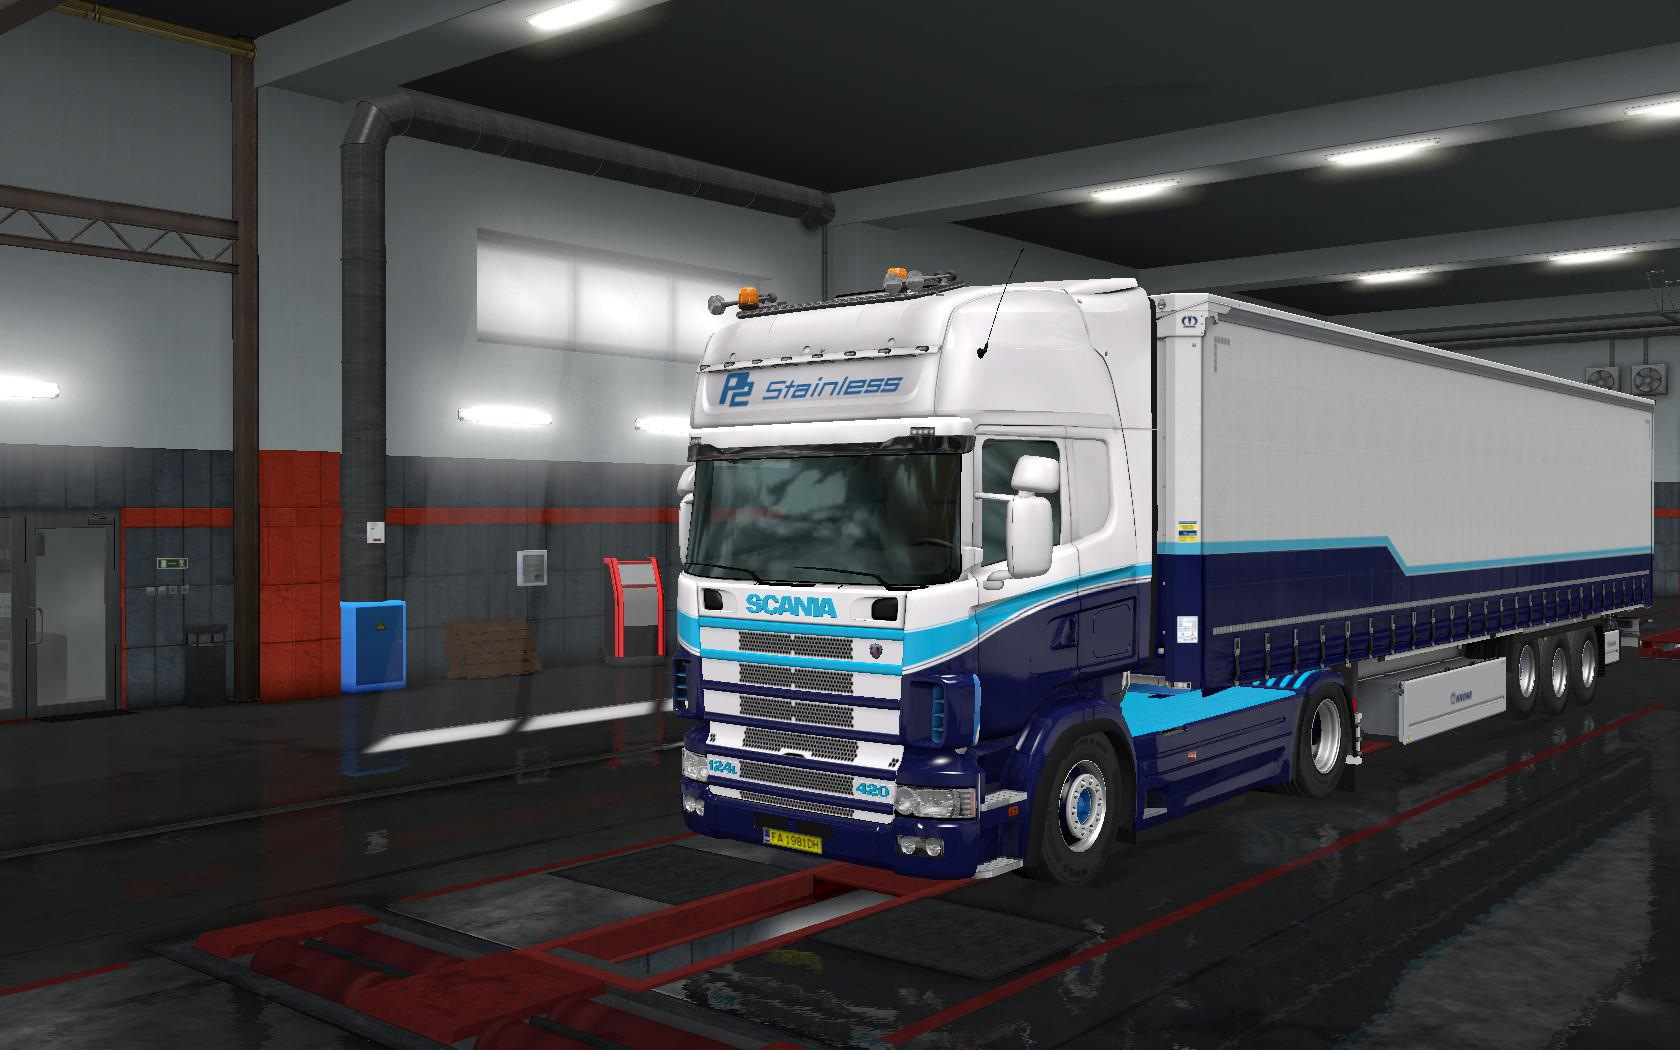 P2 Stainless skin For Scania RJL & Scania R4 Series 1.34